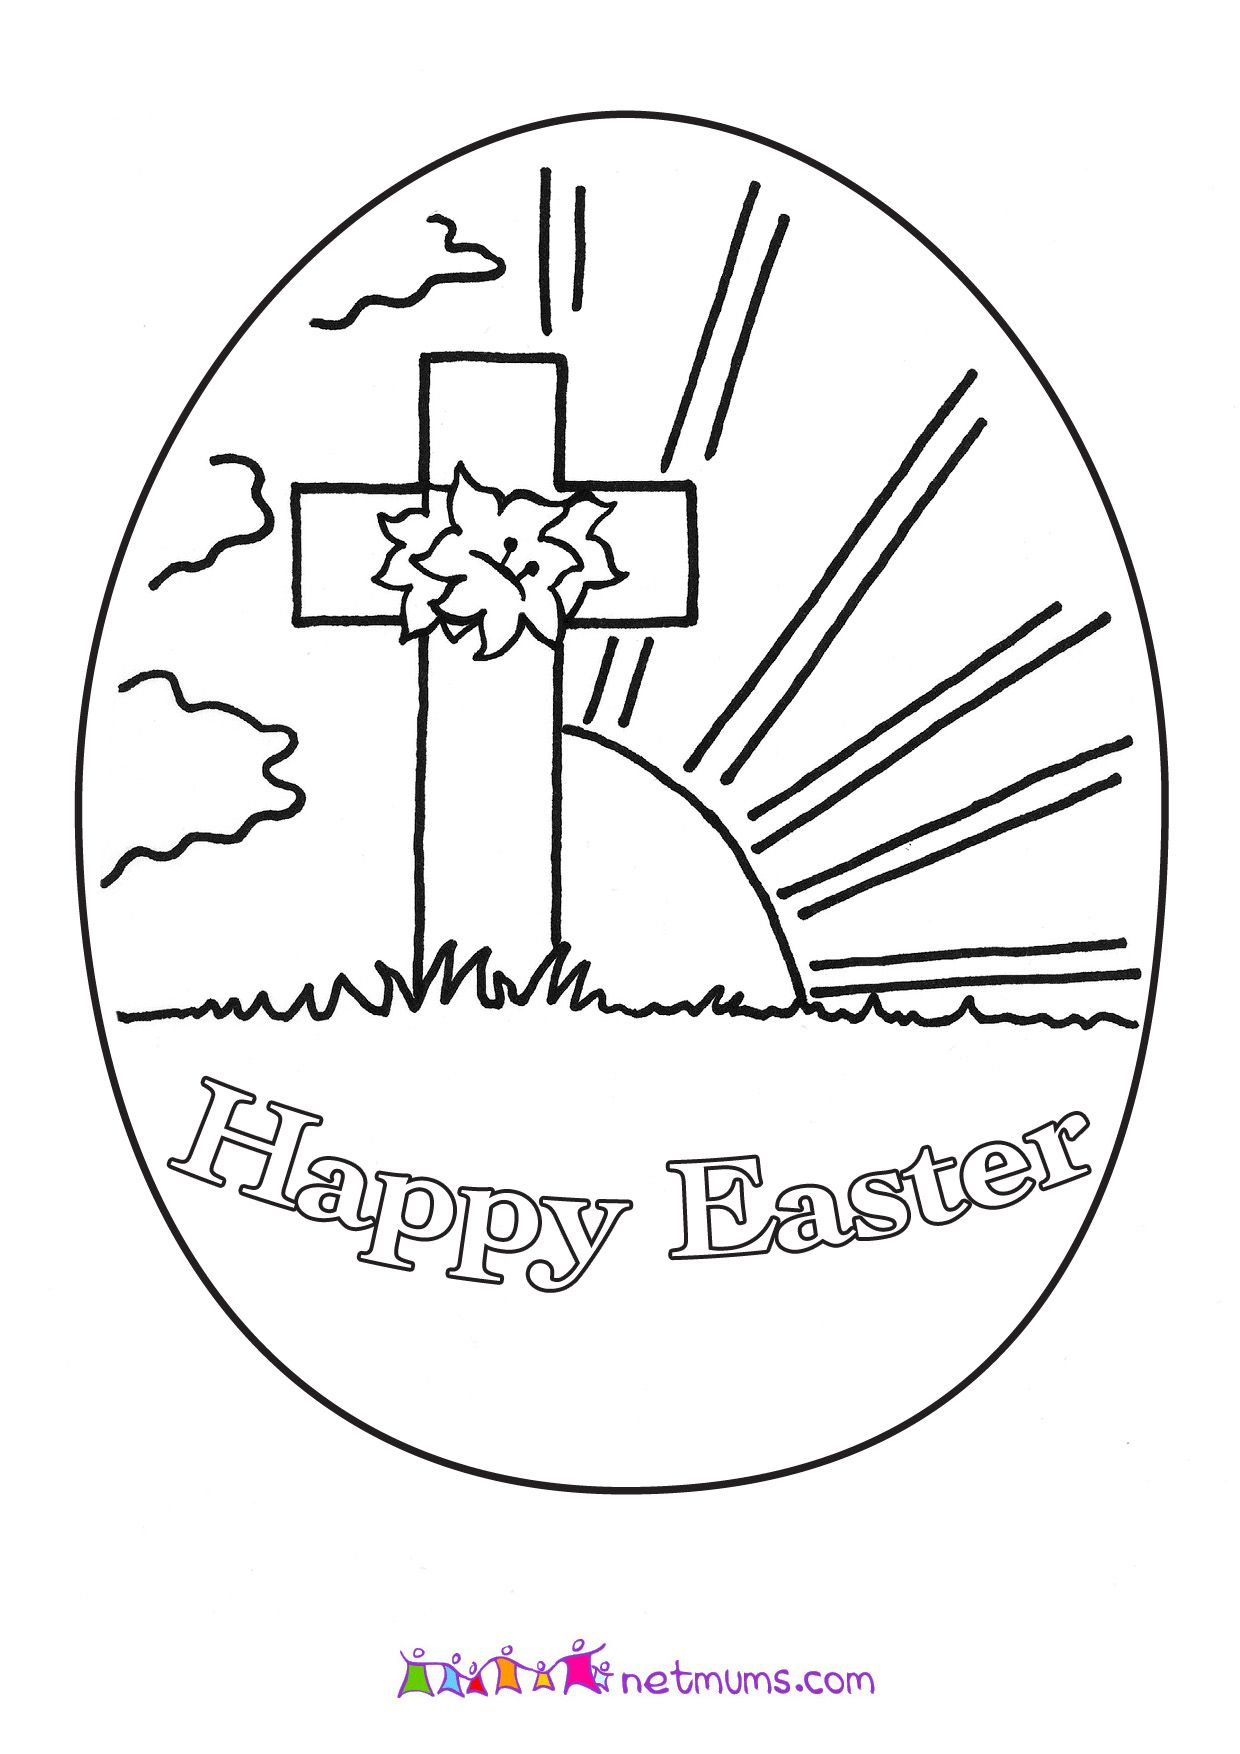 Free Easter Coloring Pages For Kindergarten : Yep an easter activity that doesn t involve chocolate